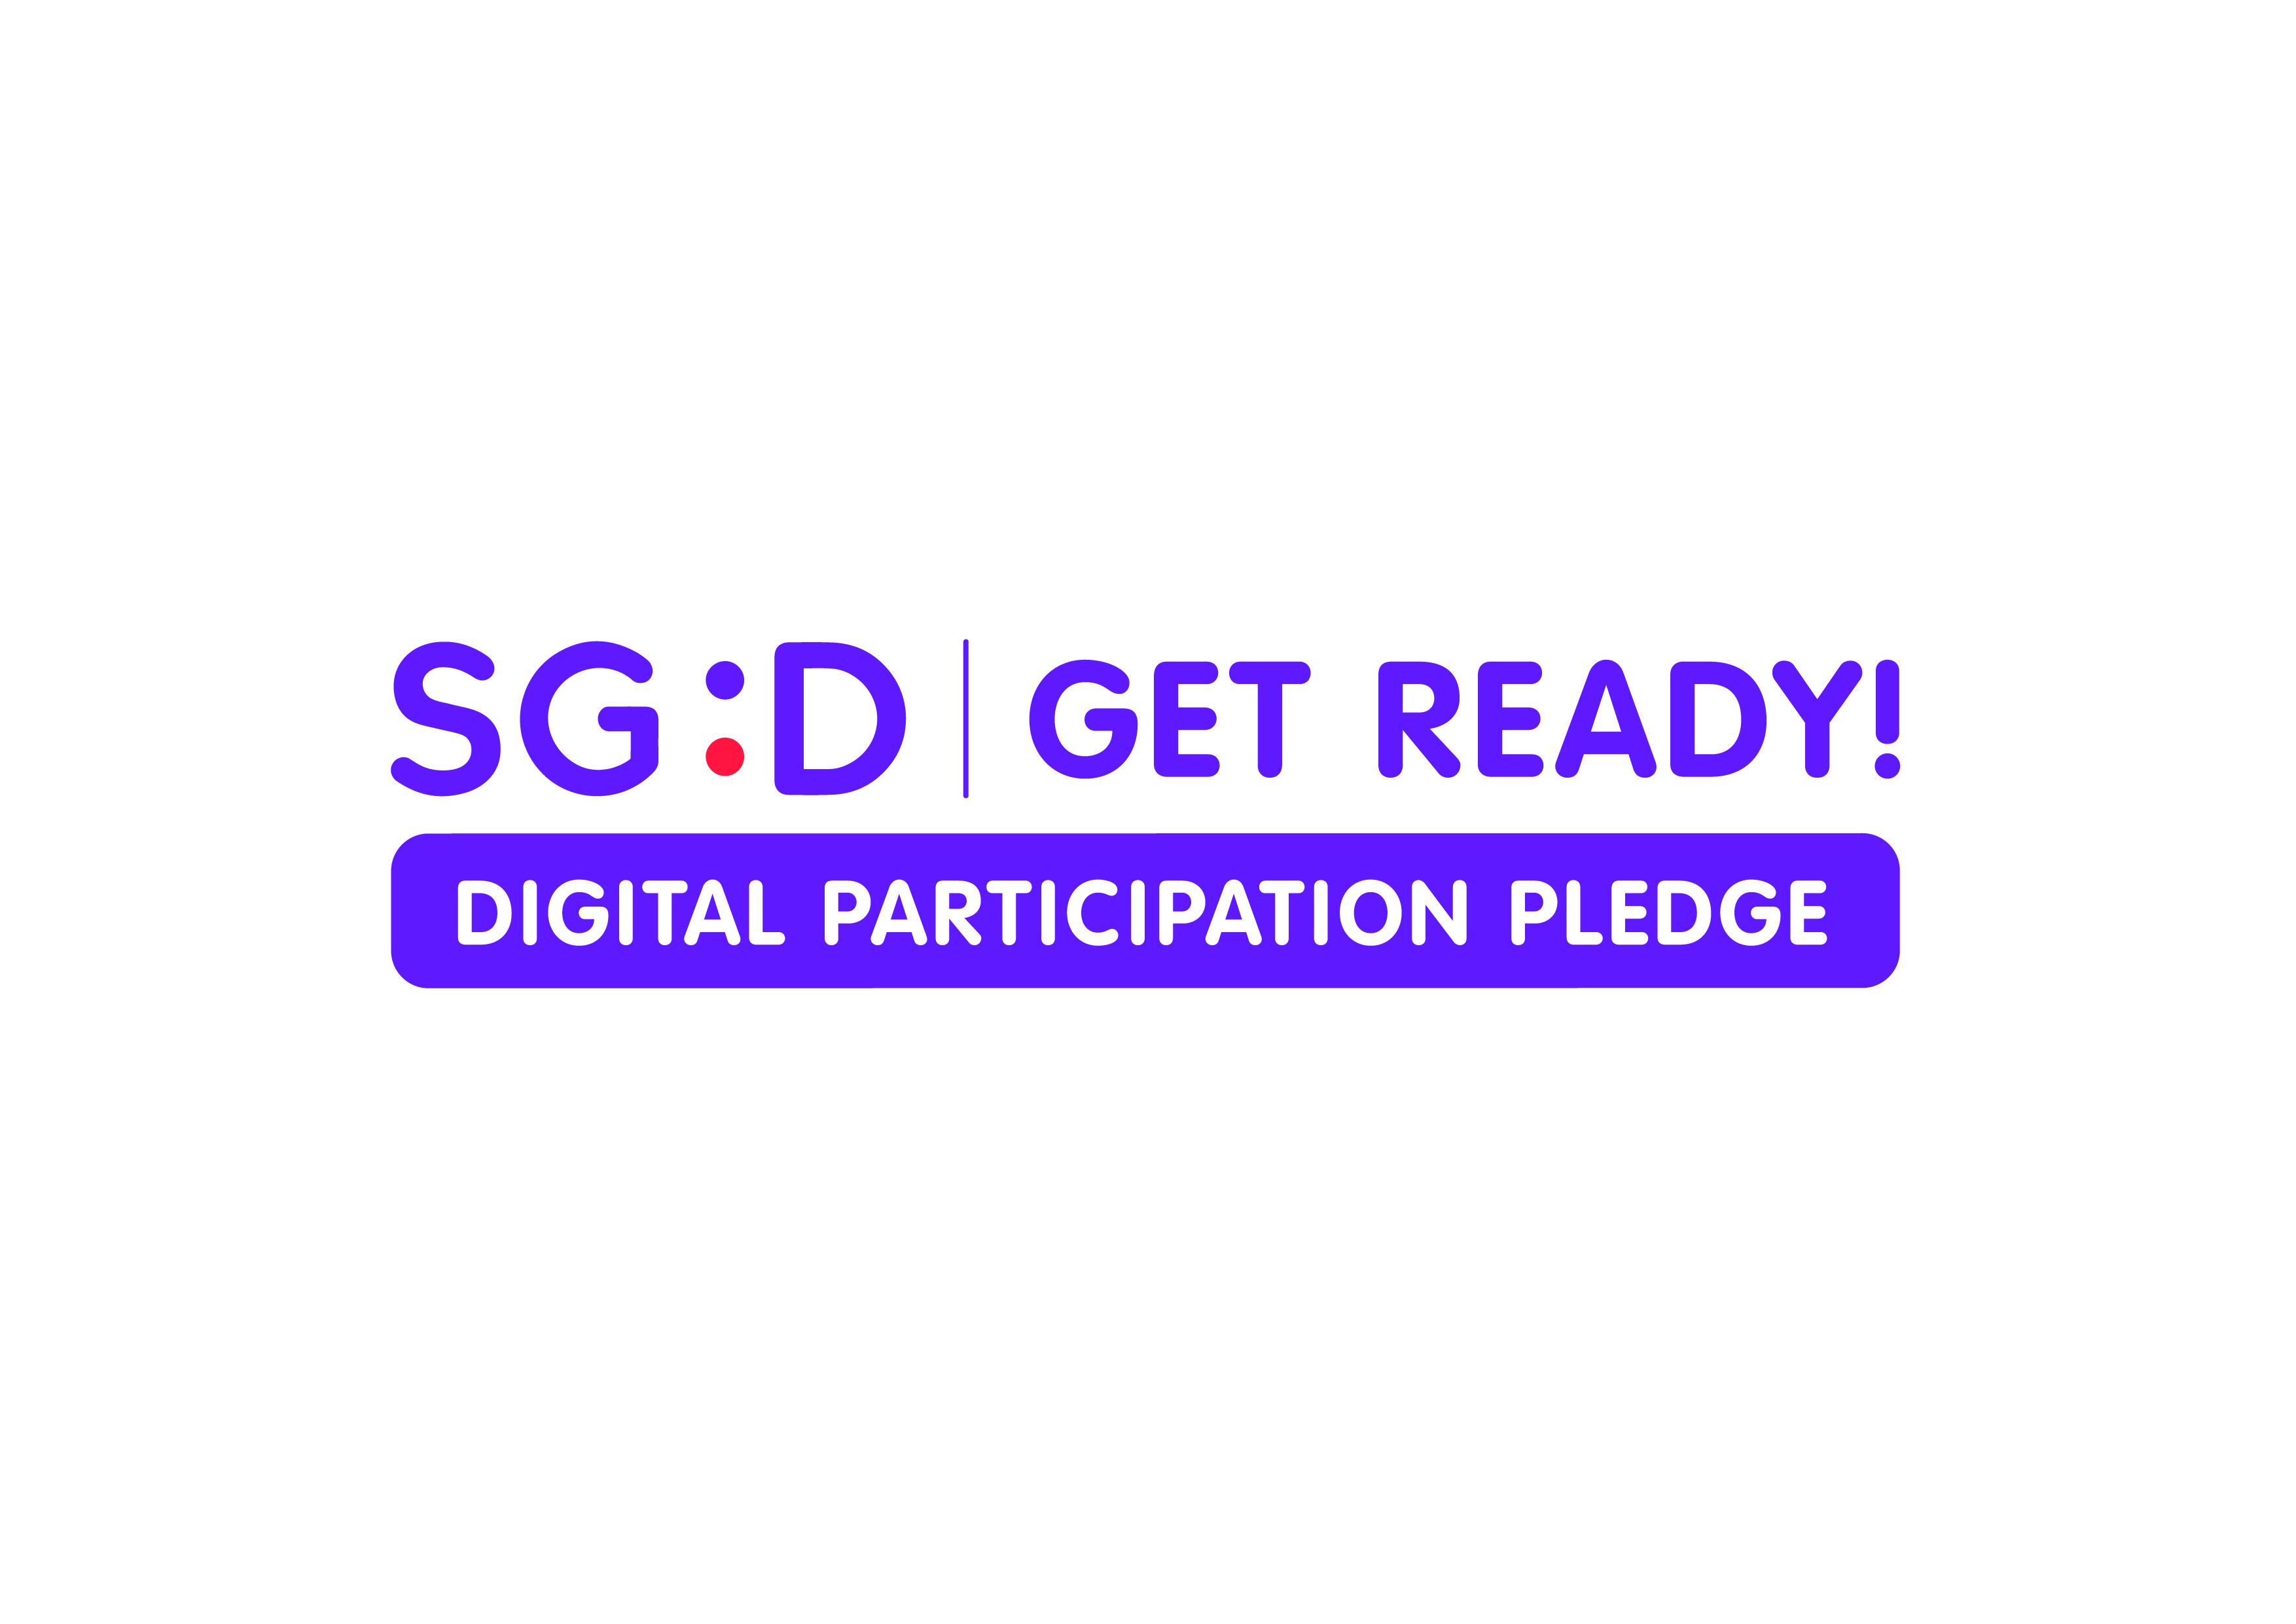 Kidibliss is SGD Ready (Digital Participation Pledge).